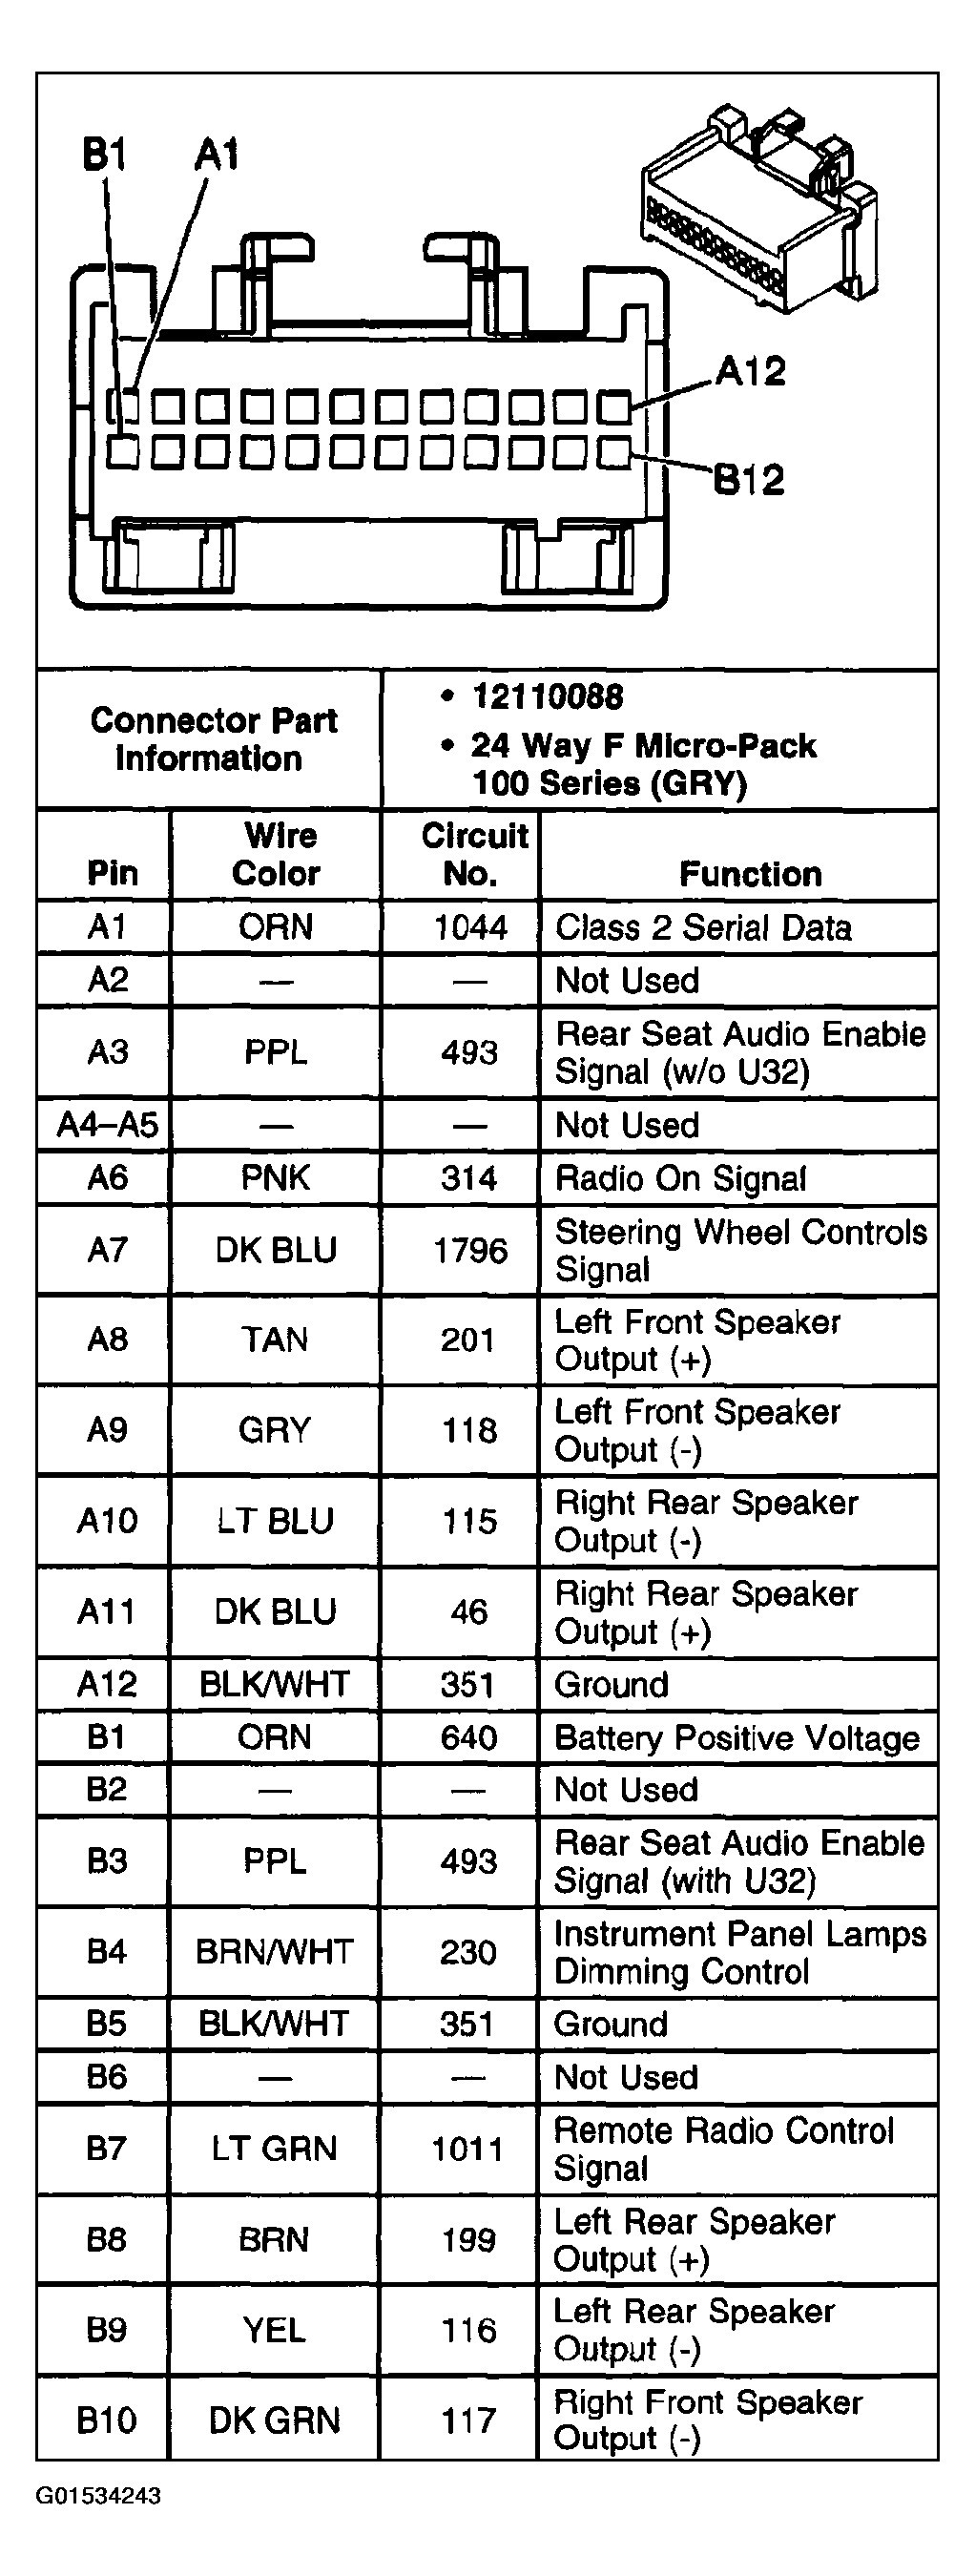 2005 Trailblazer Stereo Wiring Diagram 2005 Trailblazer Stereo Wiring Diagram Of 2005 Trailblazer Stereo Wiring Diagram